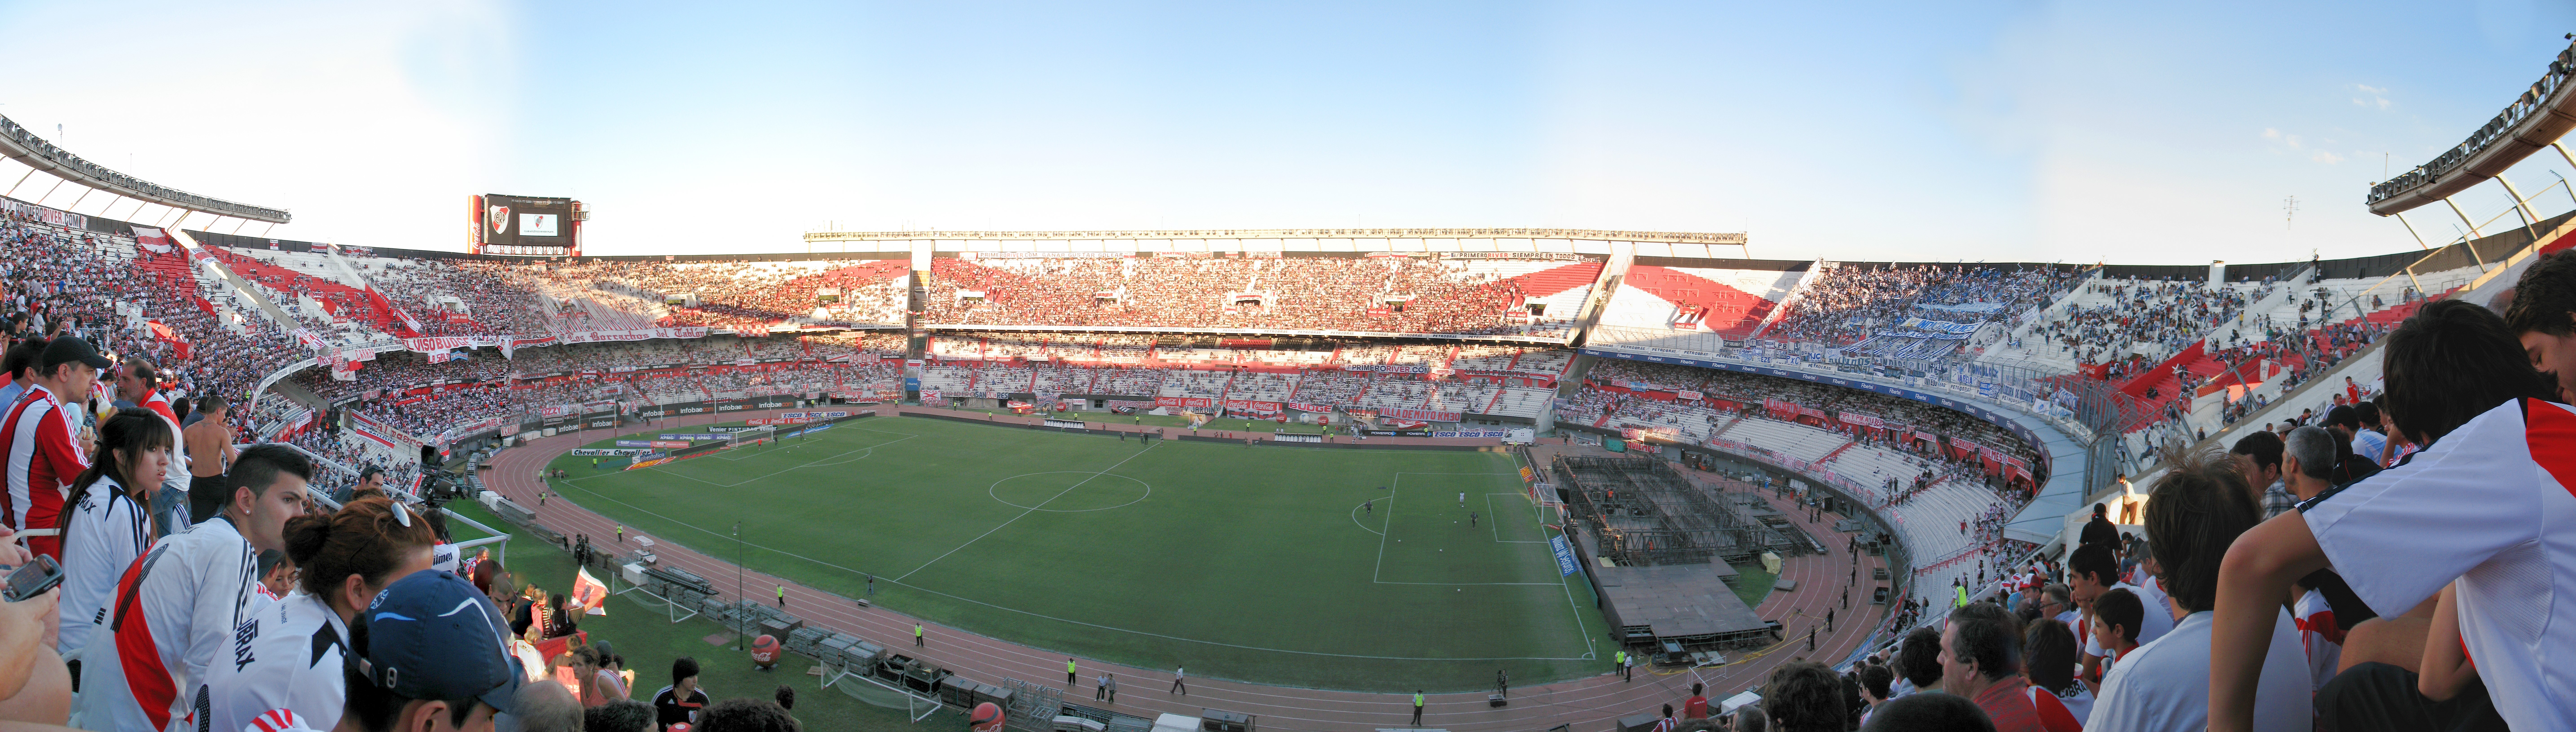 River Plate - Football